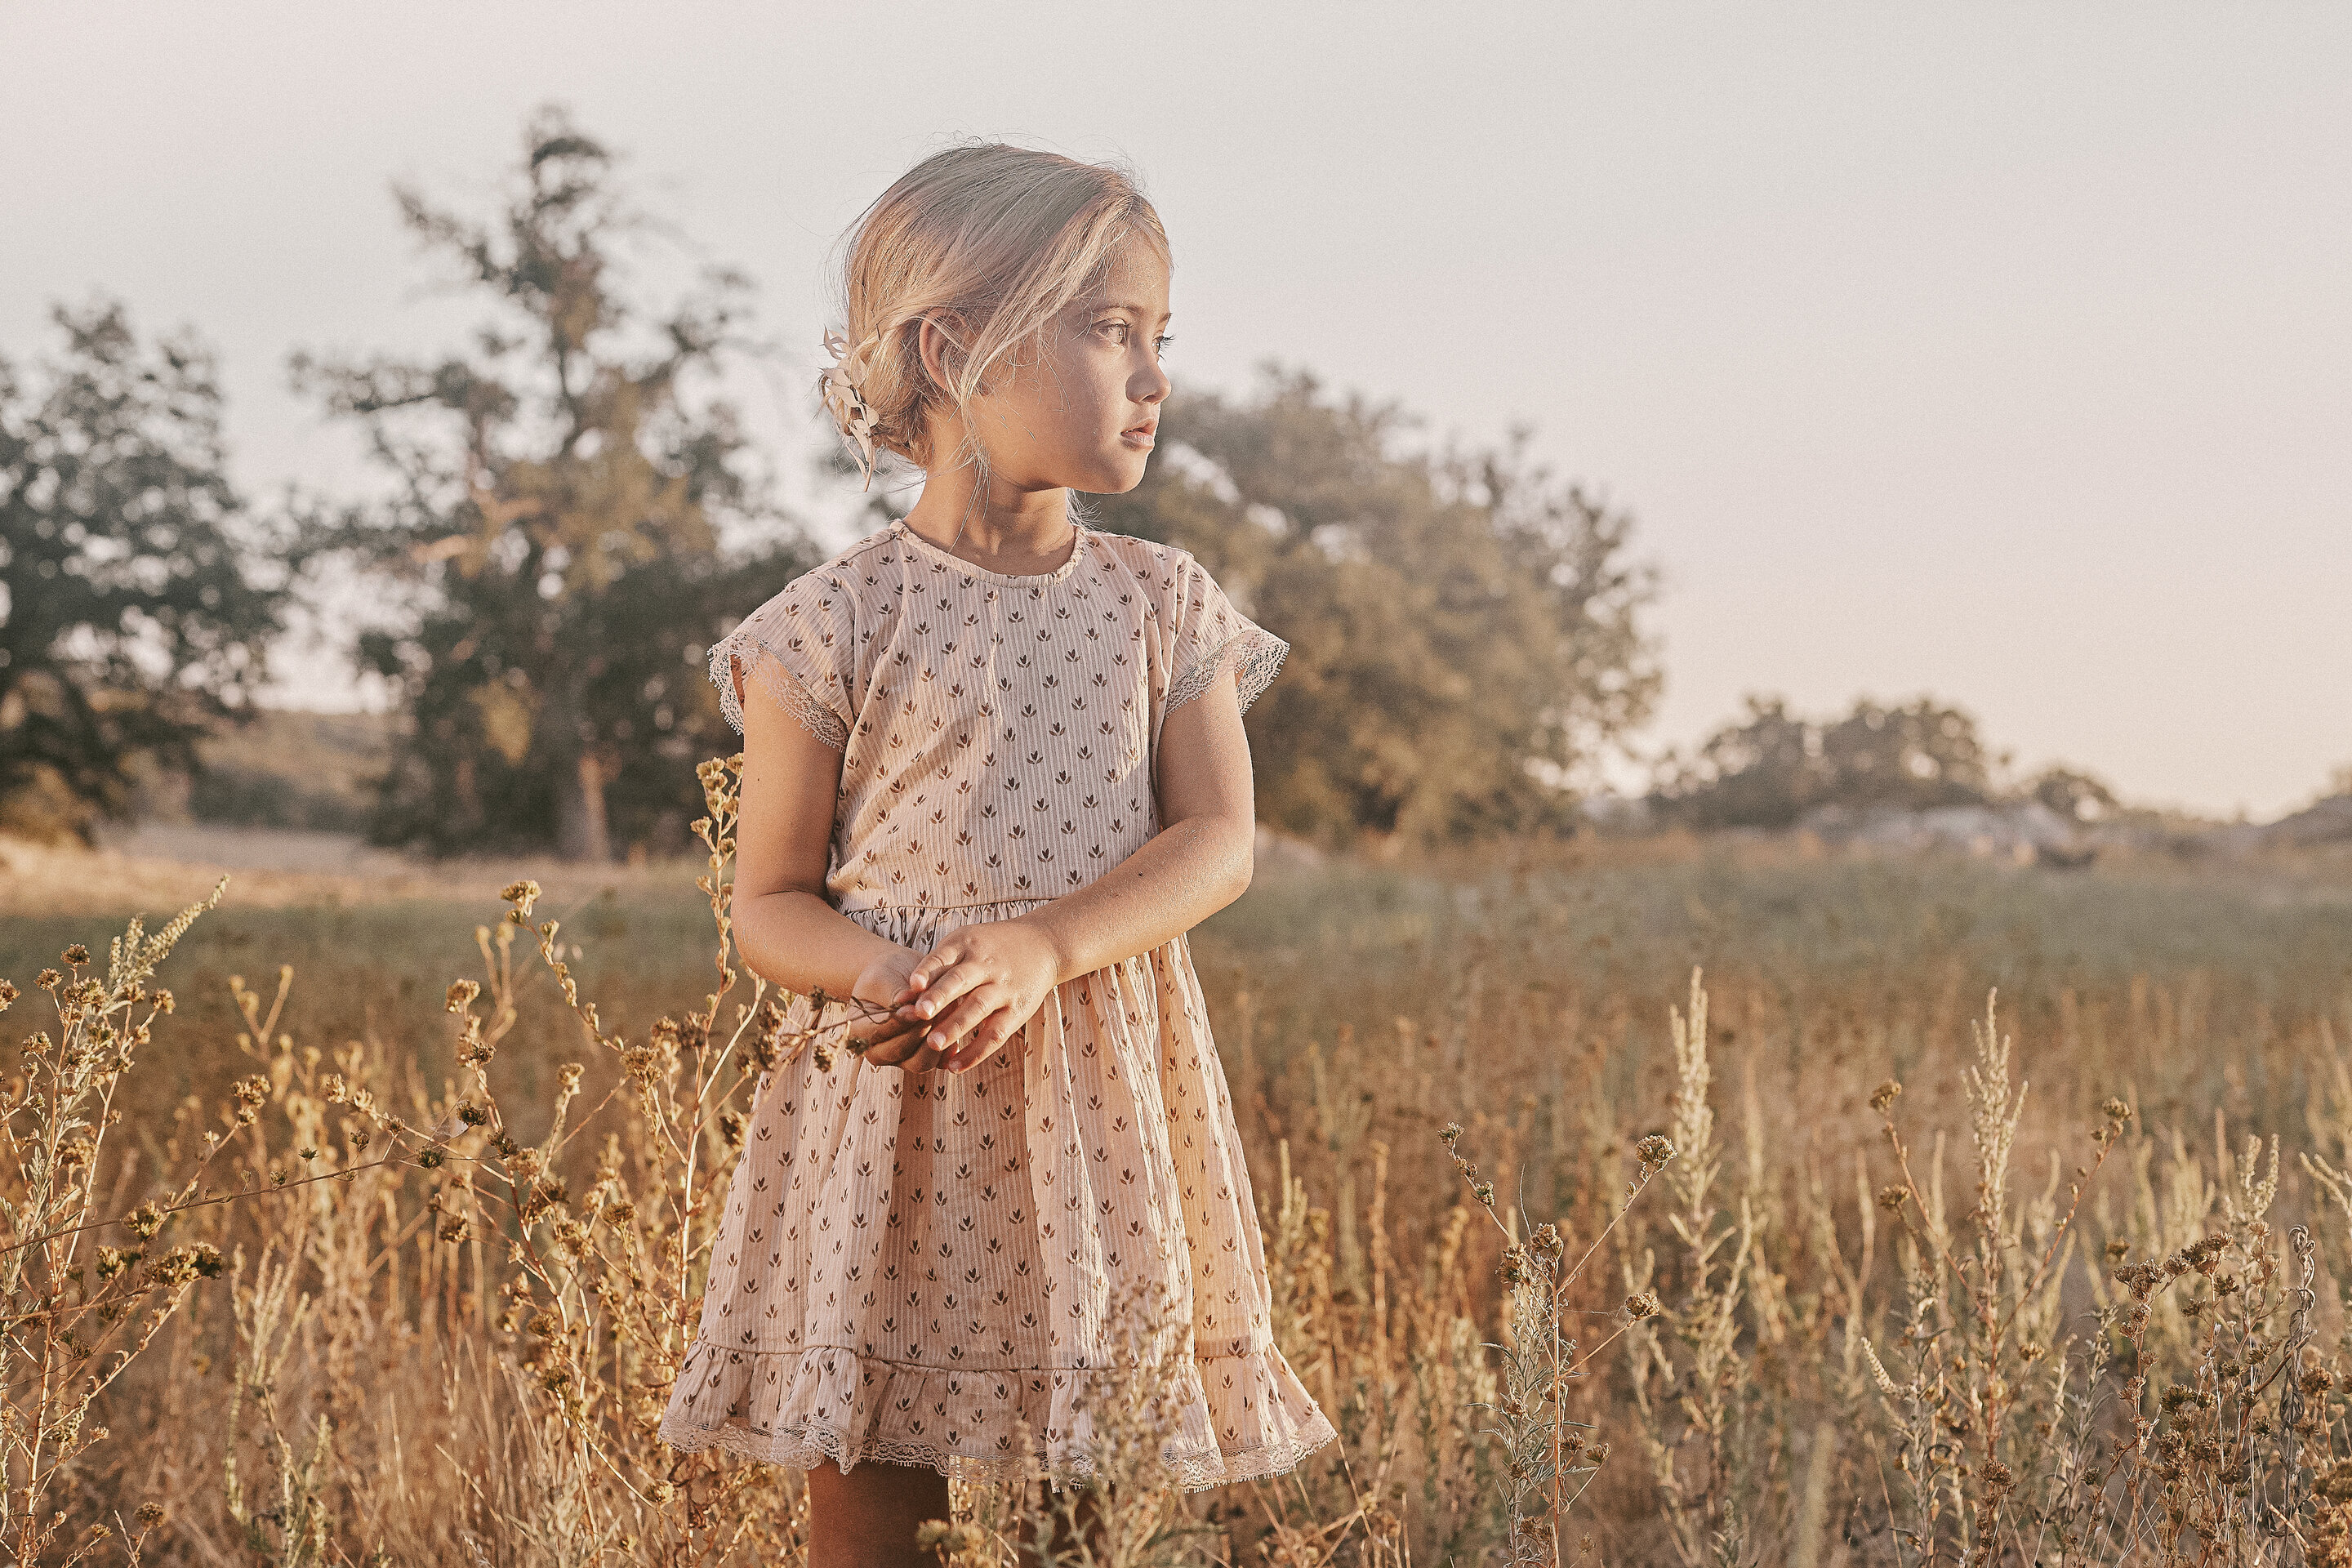 Lifestyle photo of little girl in vintage-inspired dress standing in field for new brand Noralee dresses by designer of Rylee + Cru - photo used on Barn Chic Boutique Instagram links page